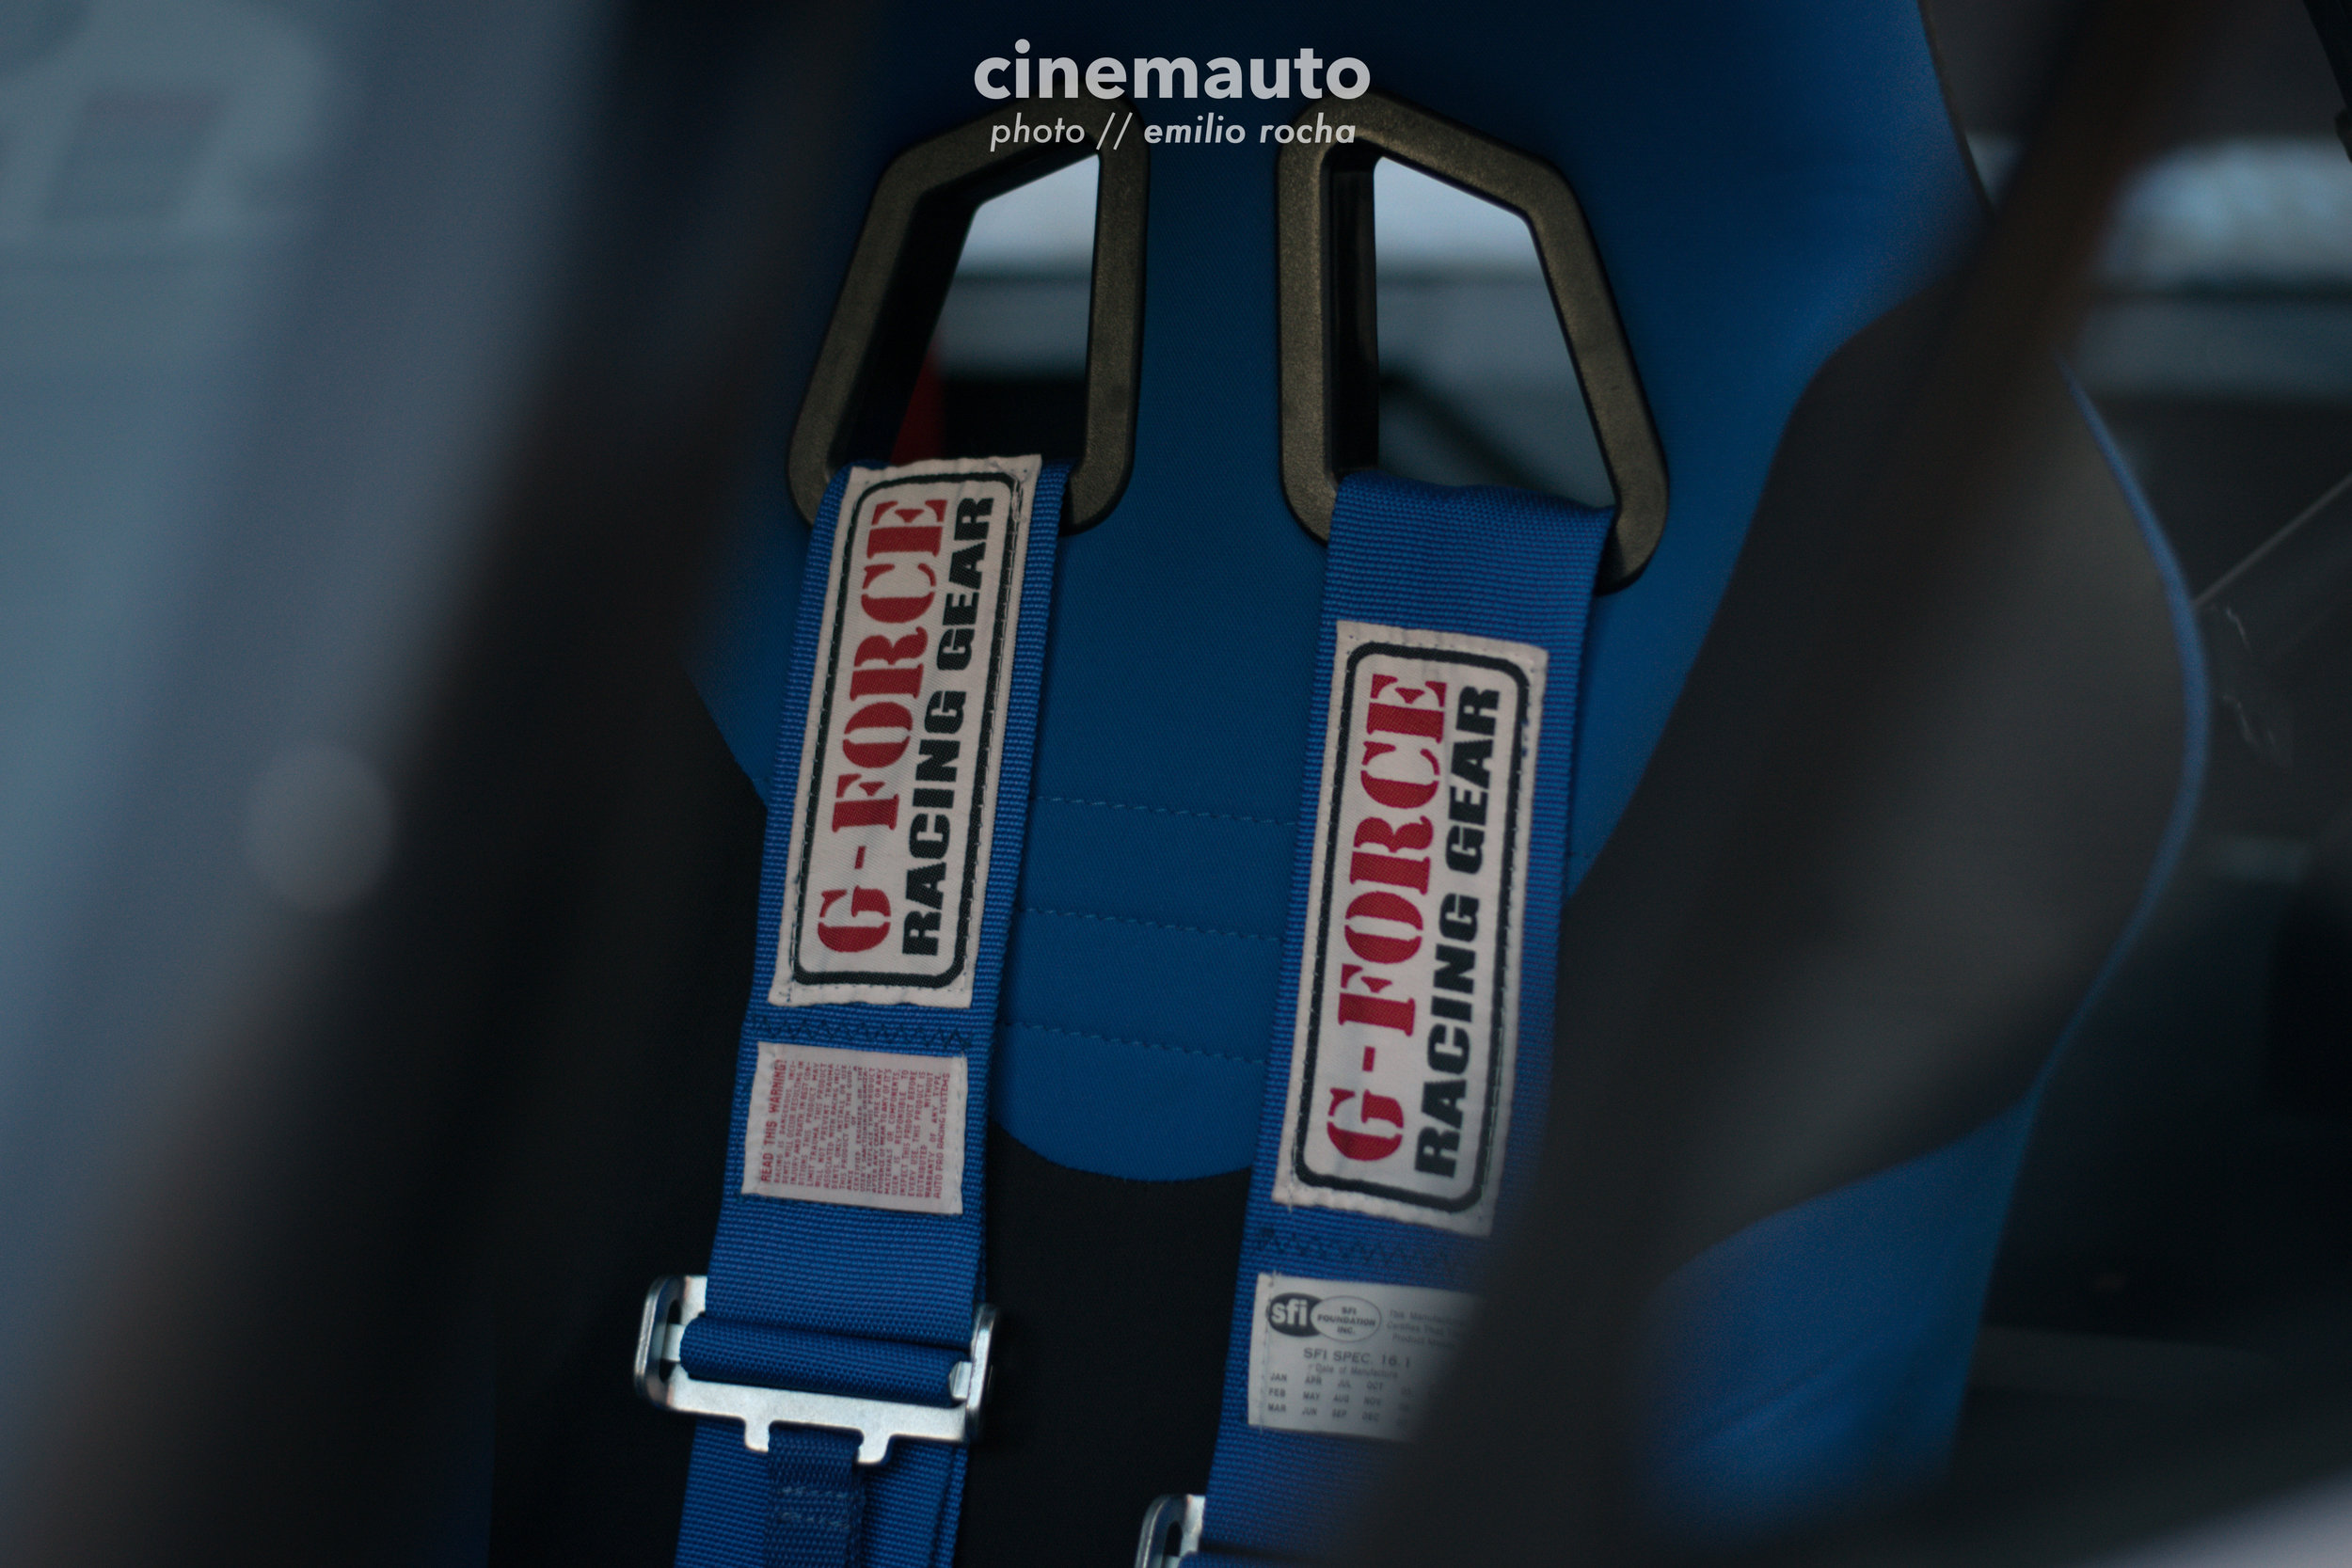 Cinemauto-RX7-21.jpg